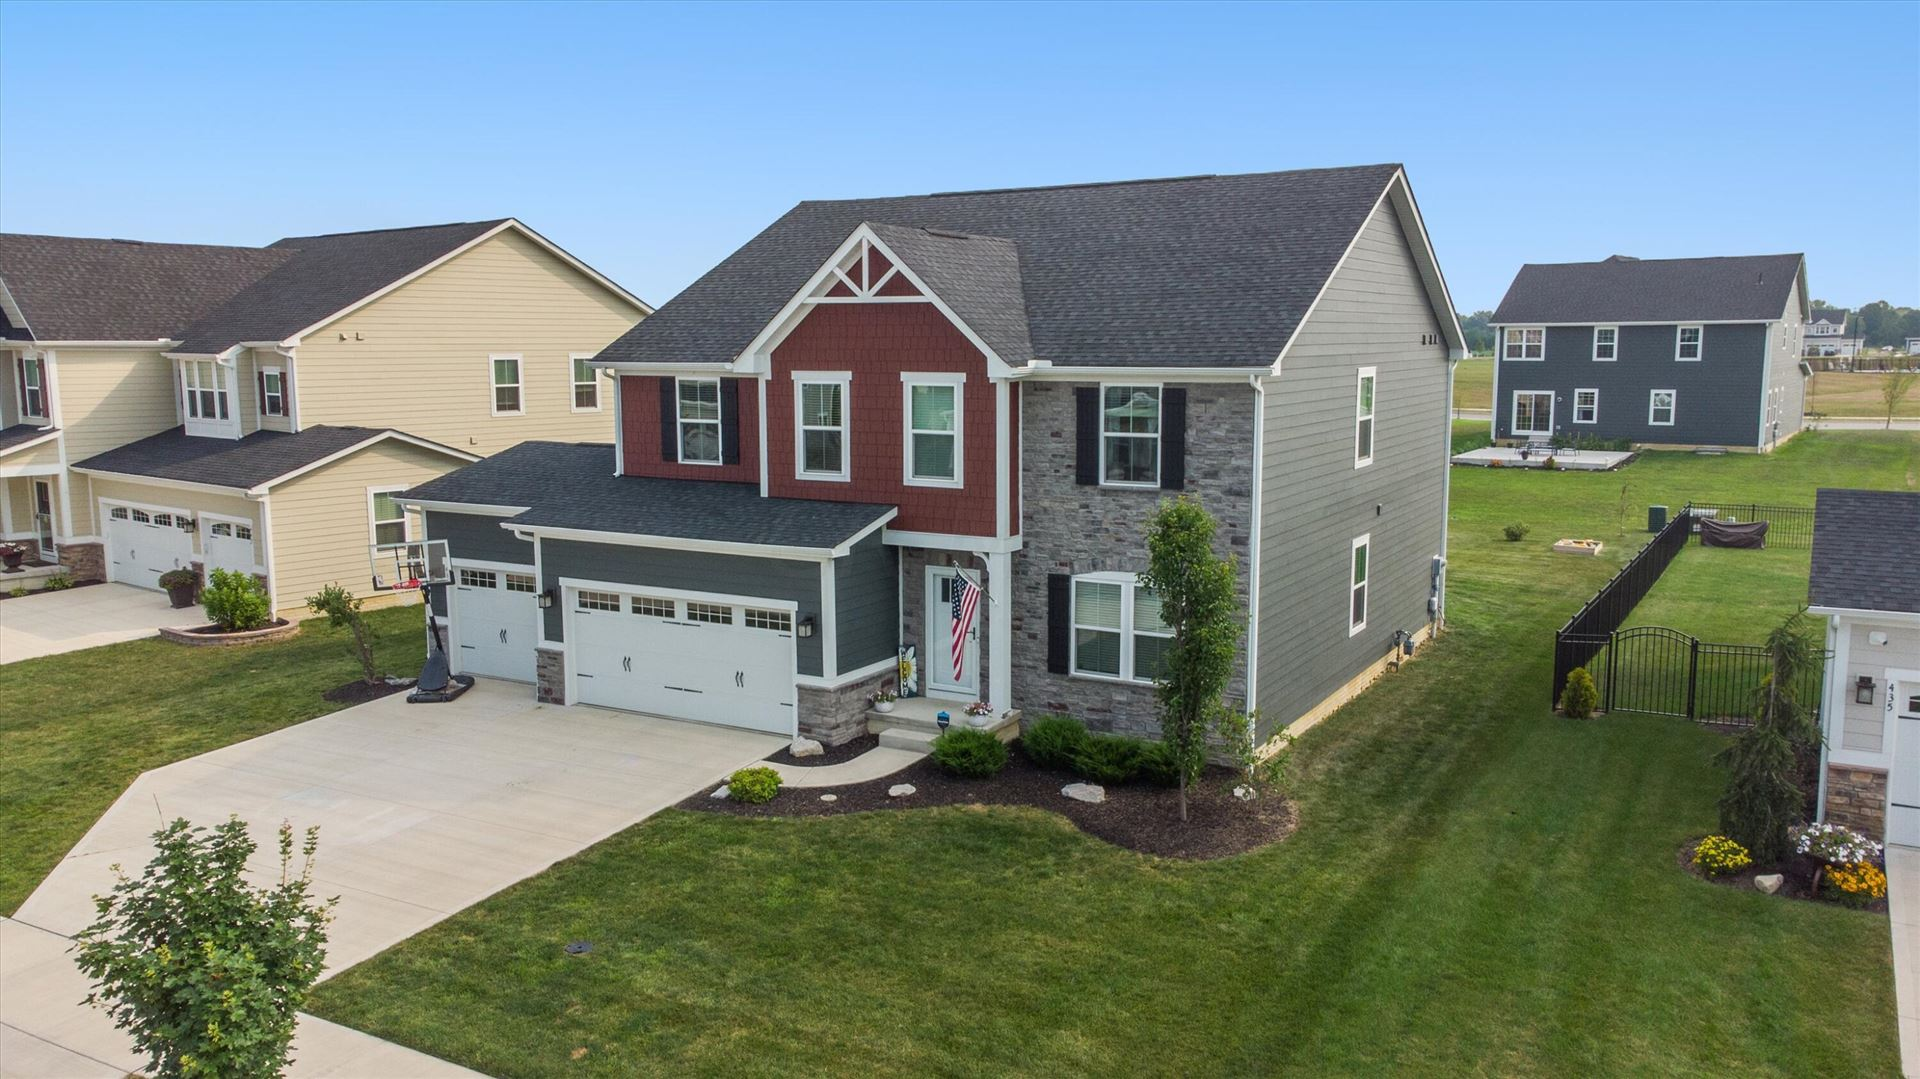 Photo of 439 Melick Drive, Delaware, OH 43015 (MLS # 221029163)